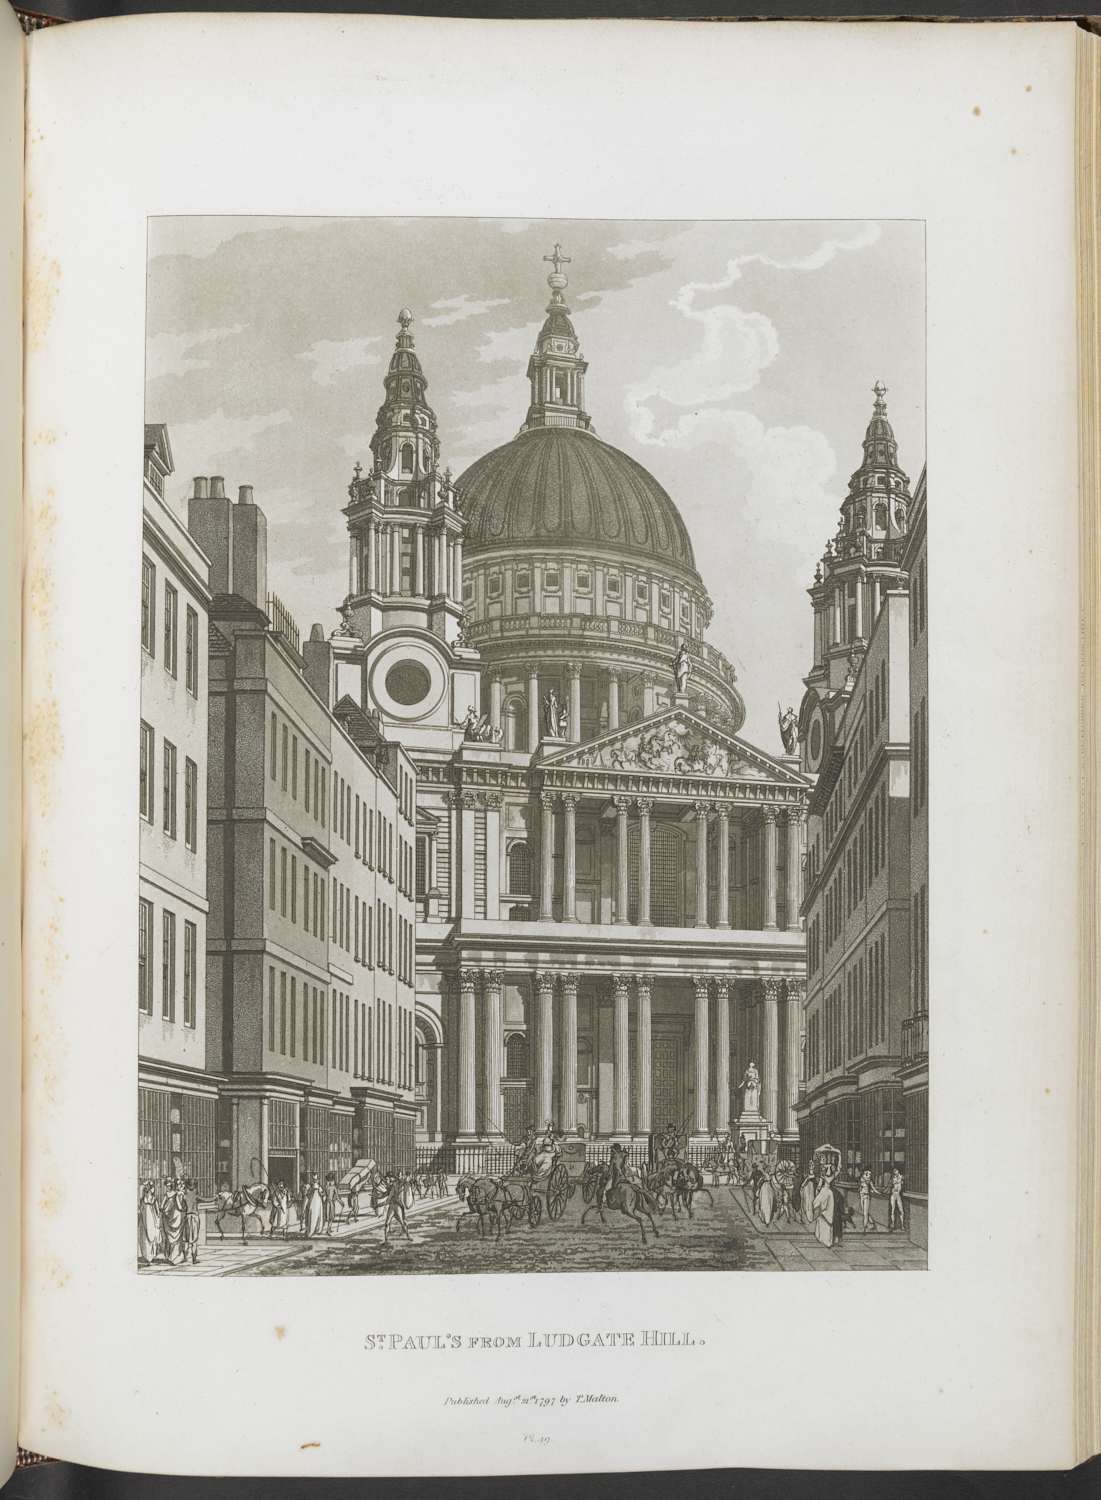 Thomas Malton, ST. PAUL'S FROM LUDGATE HILL, from Malton's A Picturesque Tour Through the Cities of London and Westminster, (London: Thomas Malton, 1797), etching and aquatint, 43.0 x 32.0 cm, 190.f.7.